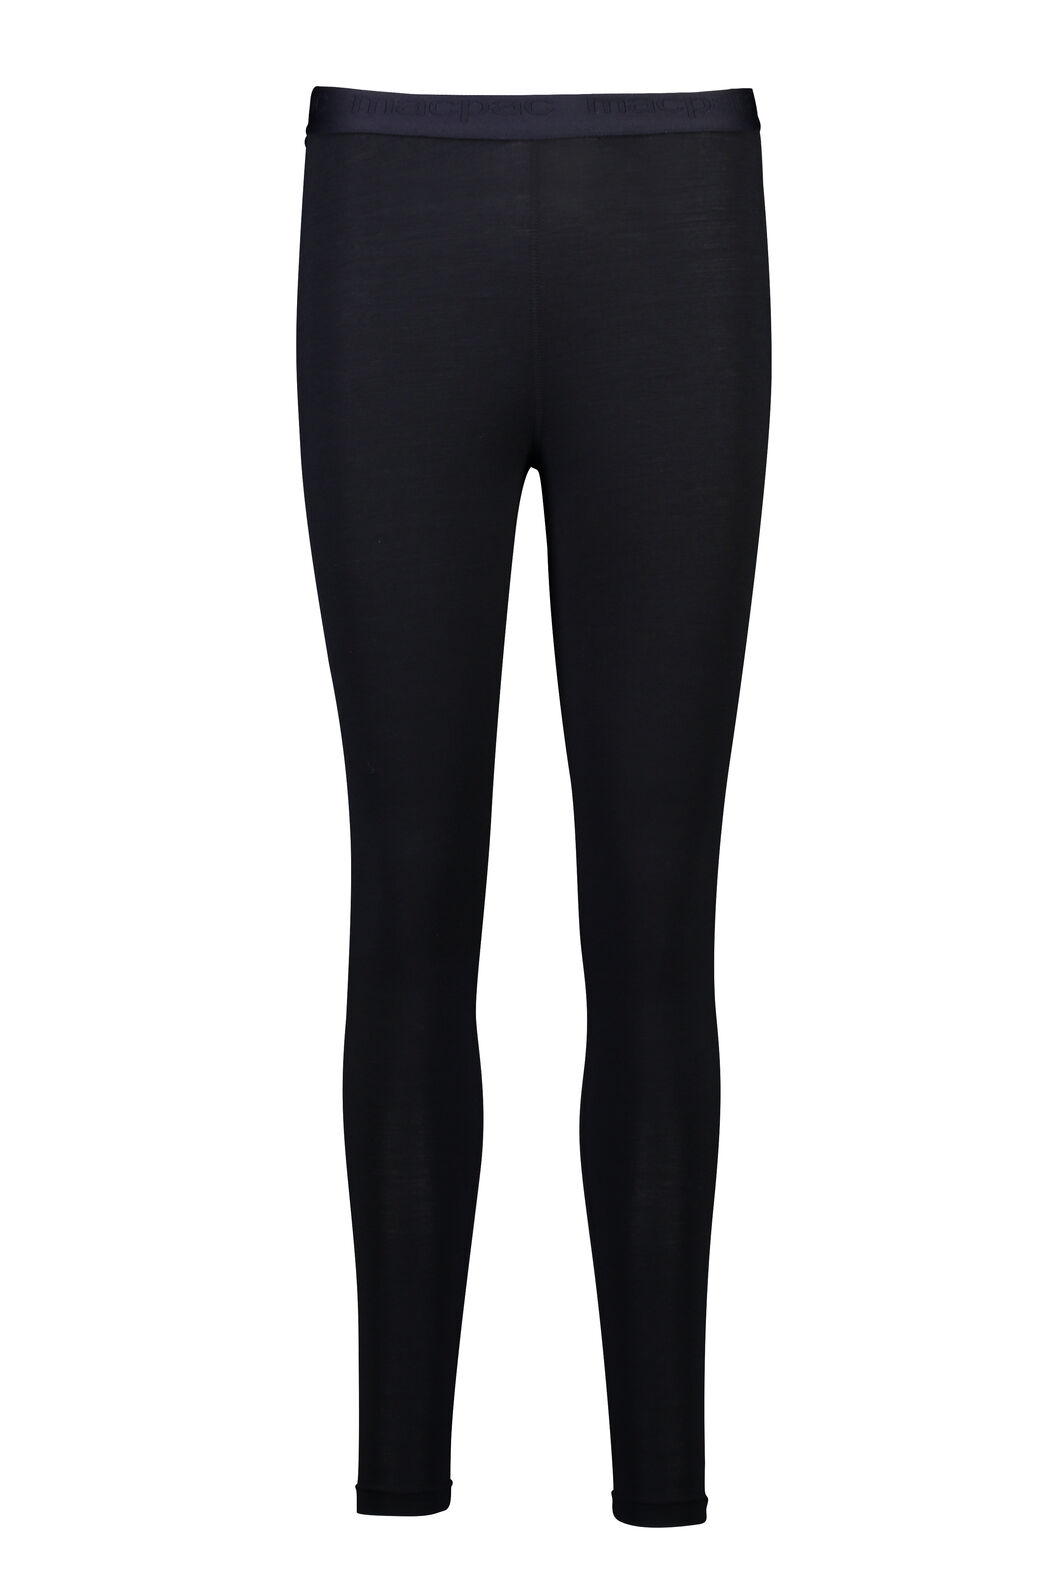 180 Merino Long Johns - Women's, Black, hi-res